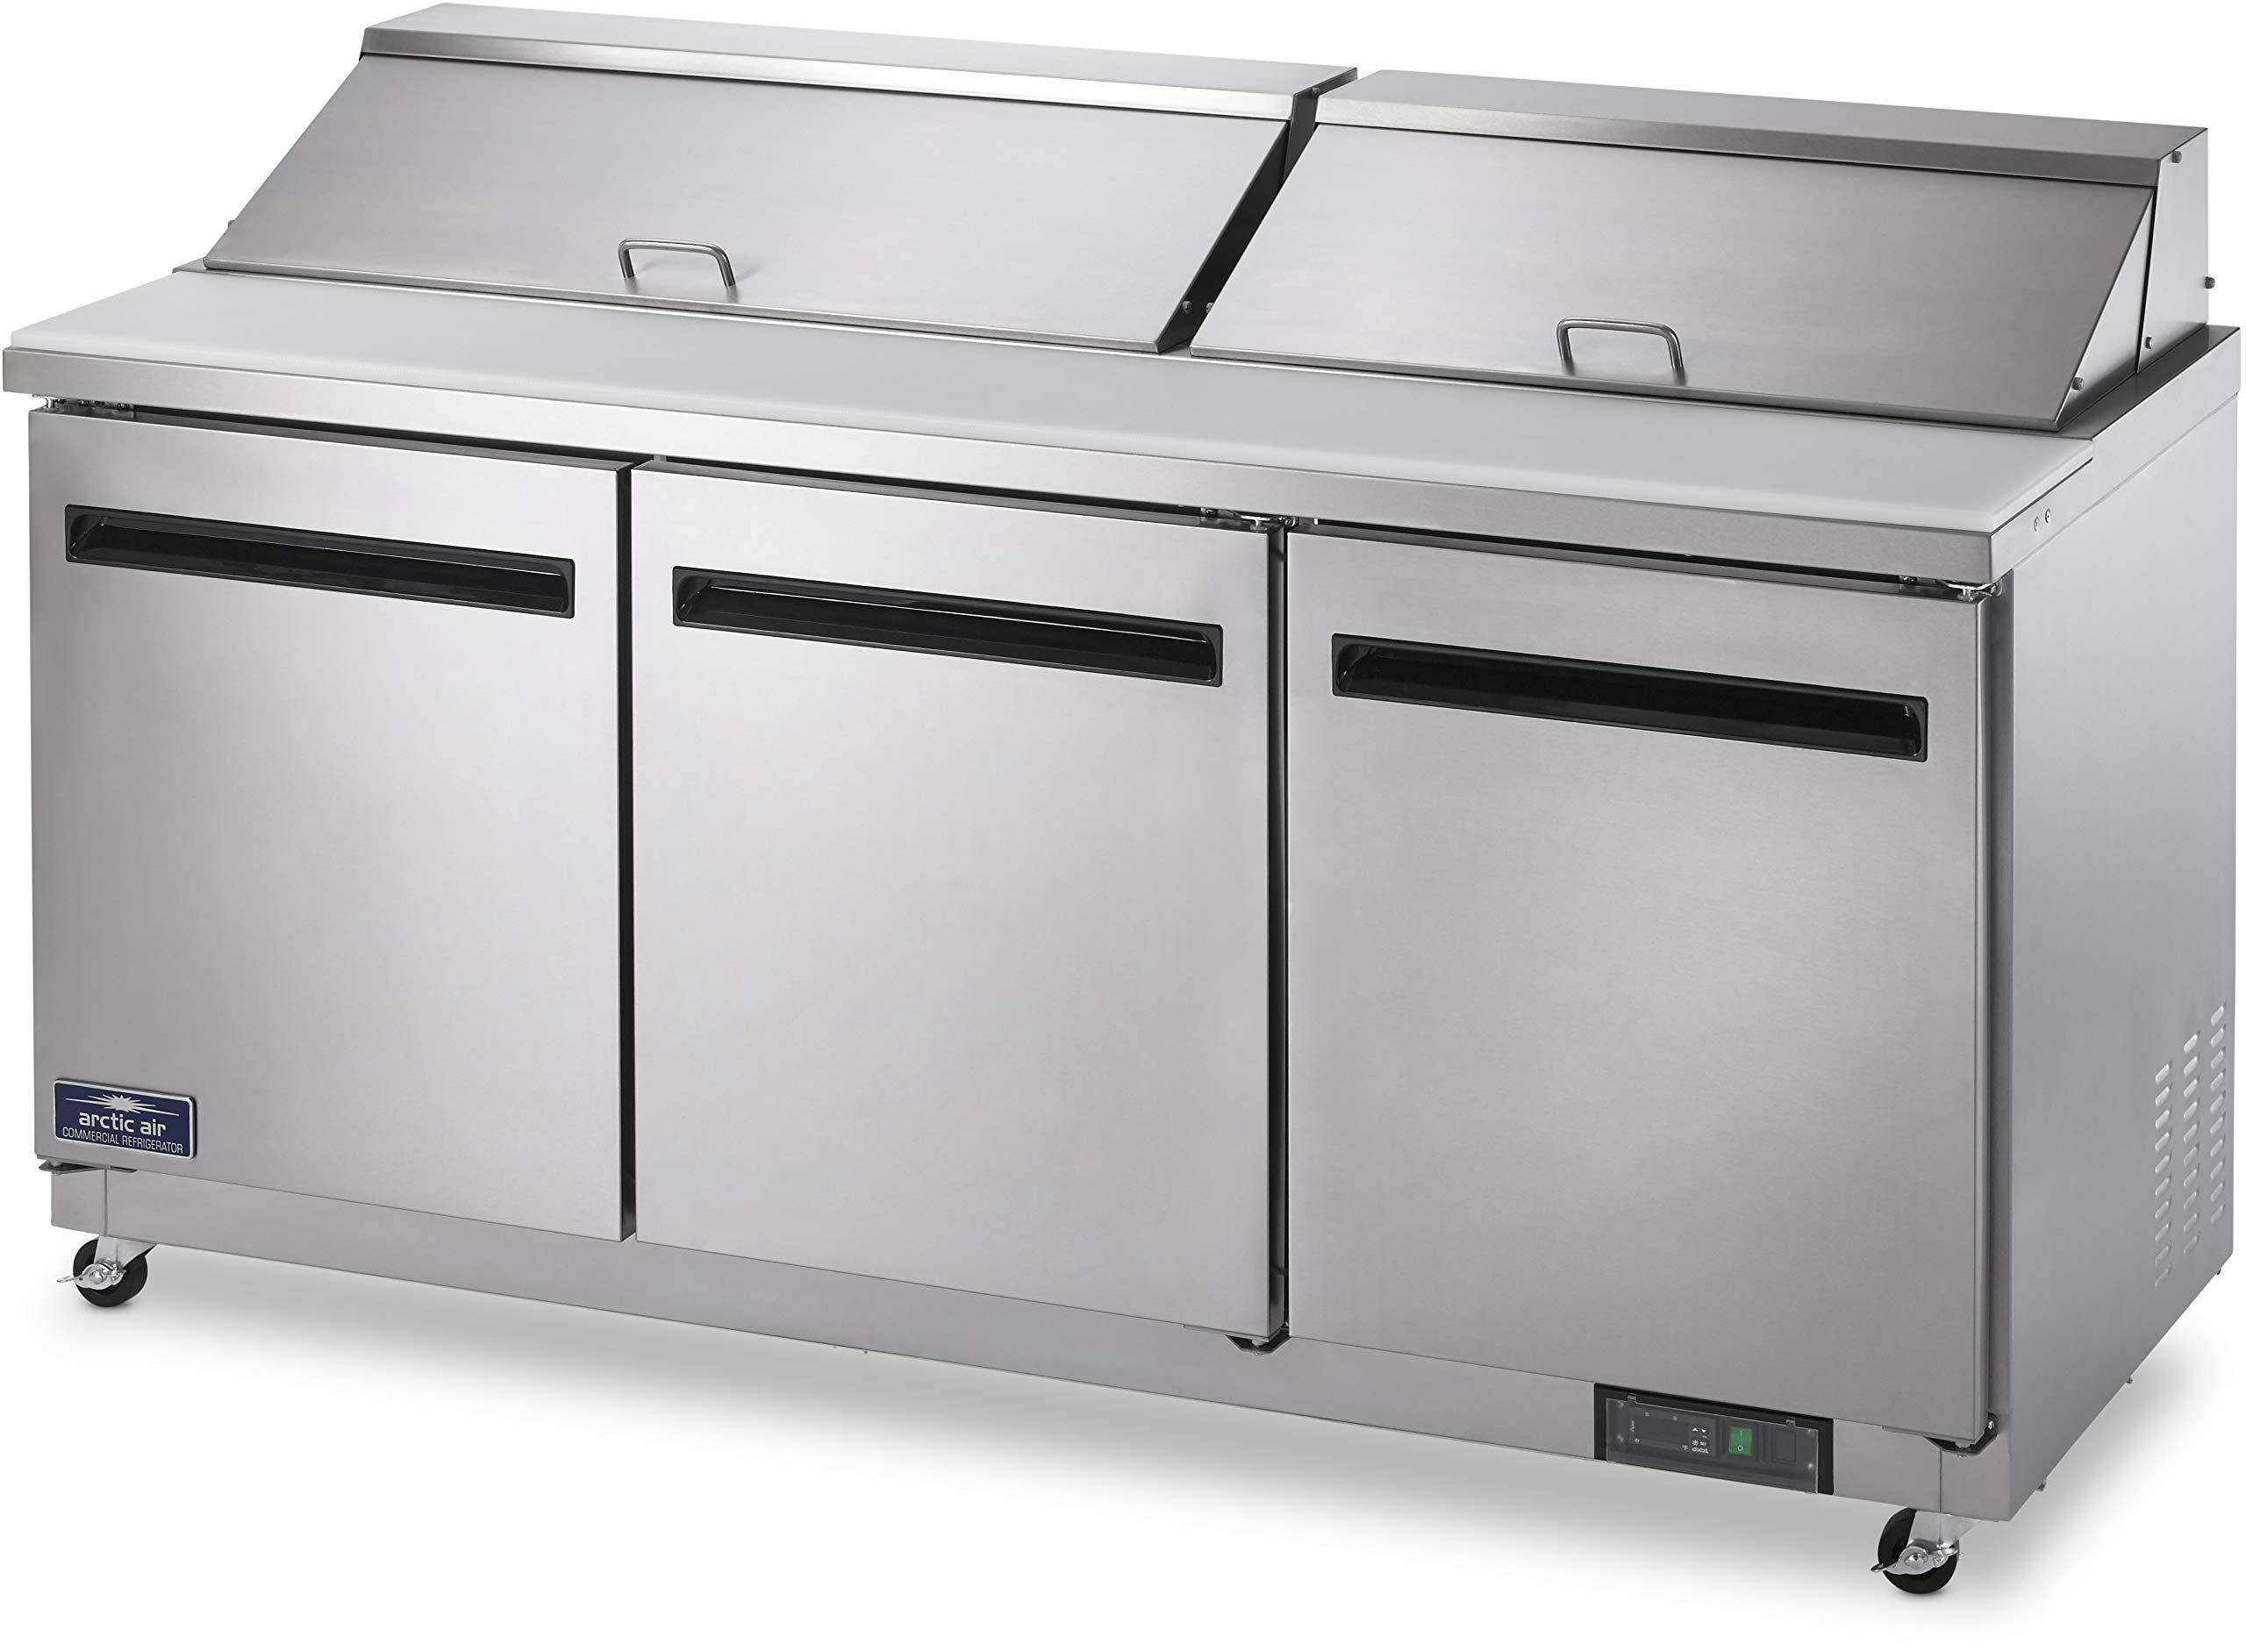 Arctic Air AST72R 72'' 3 Door Refrigerated Sandwich Prep Table by Arctic Air